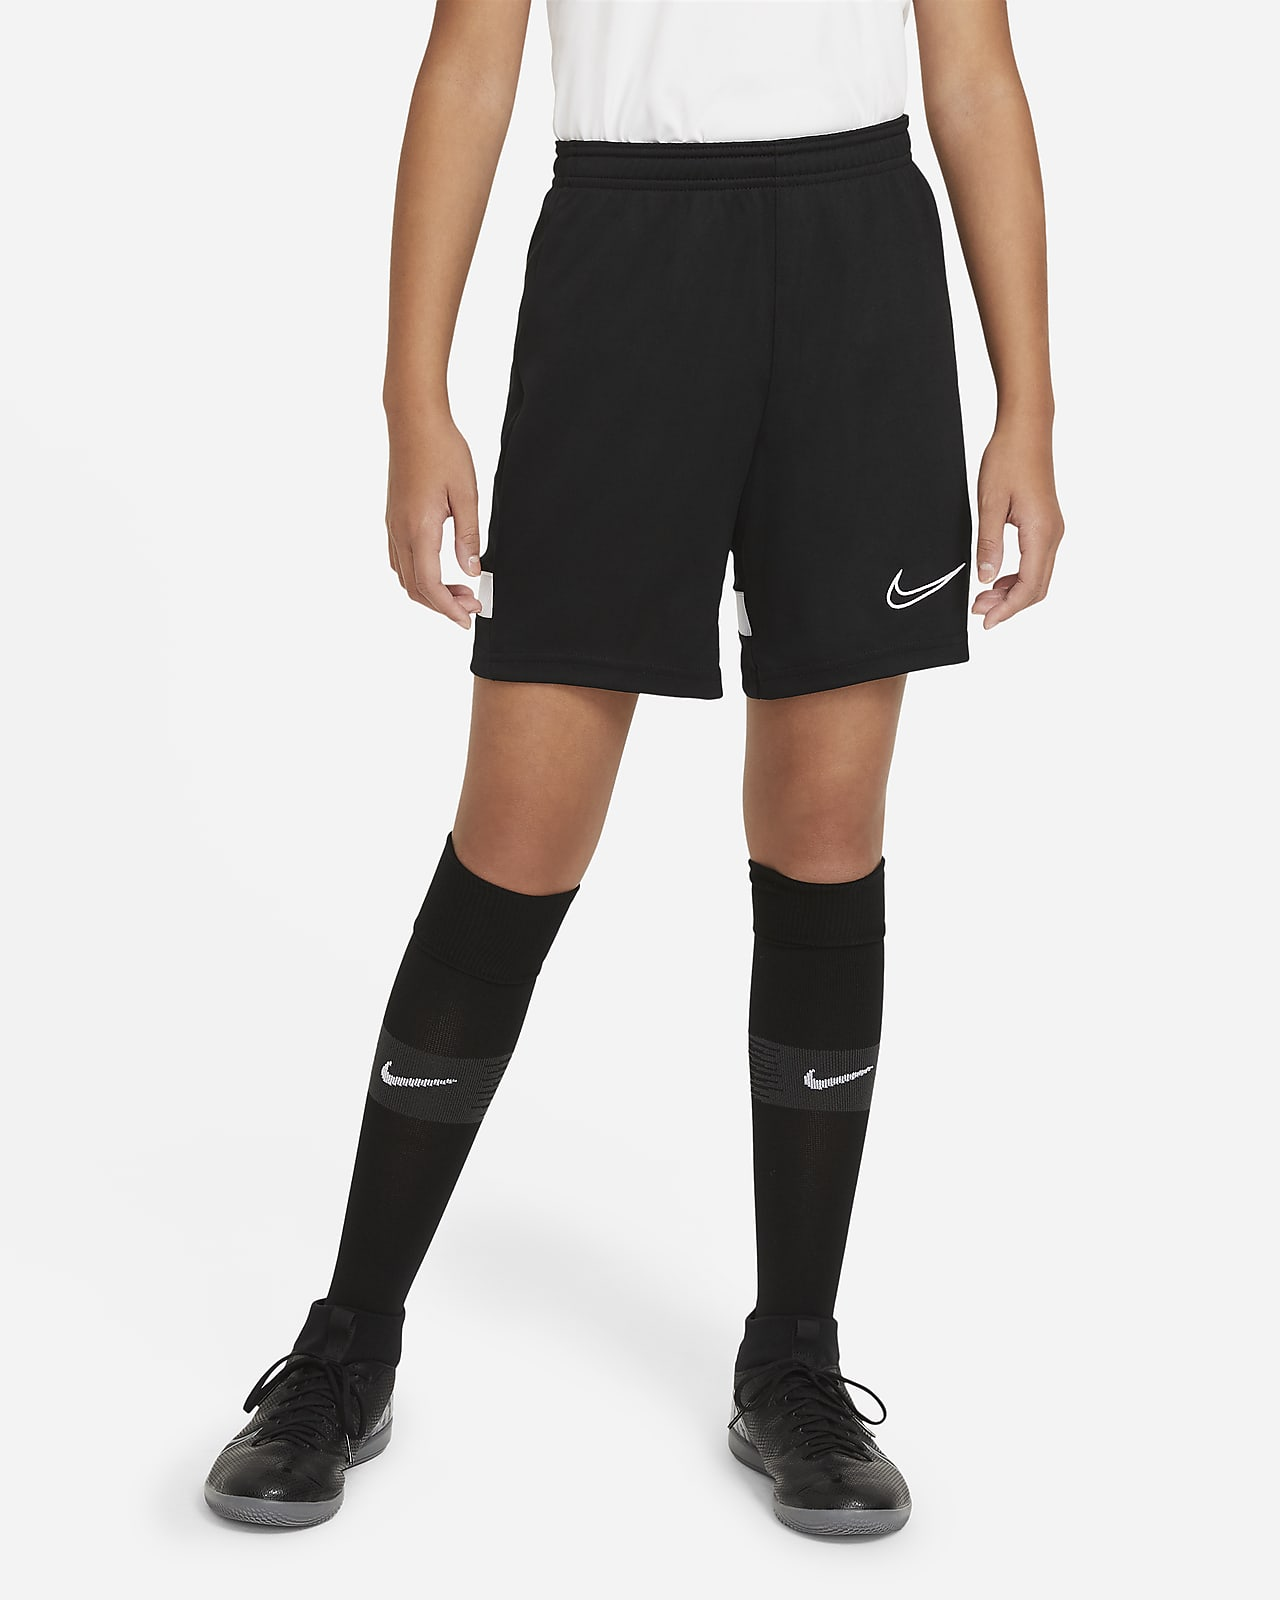 Nike Dri-FIT Academy Older Kids' Knit Football Shorts